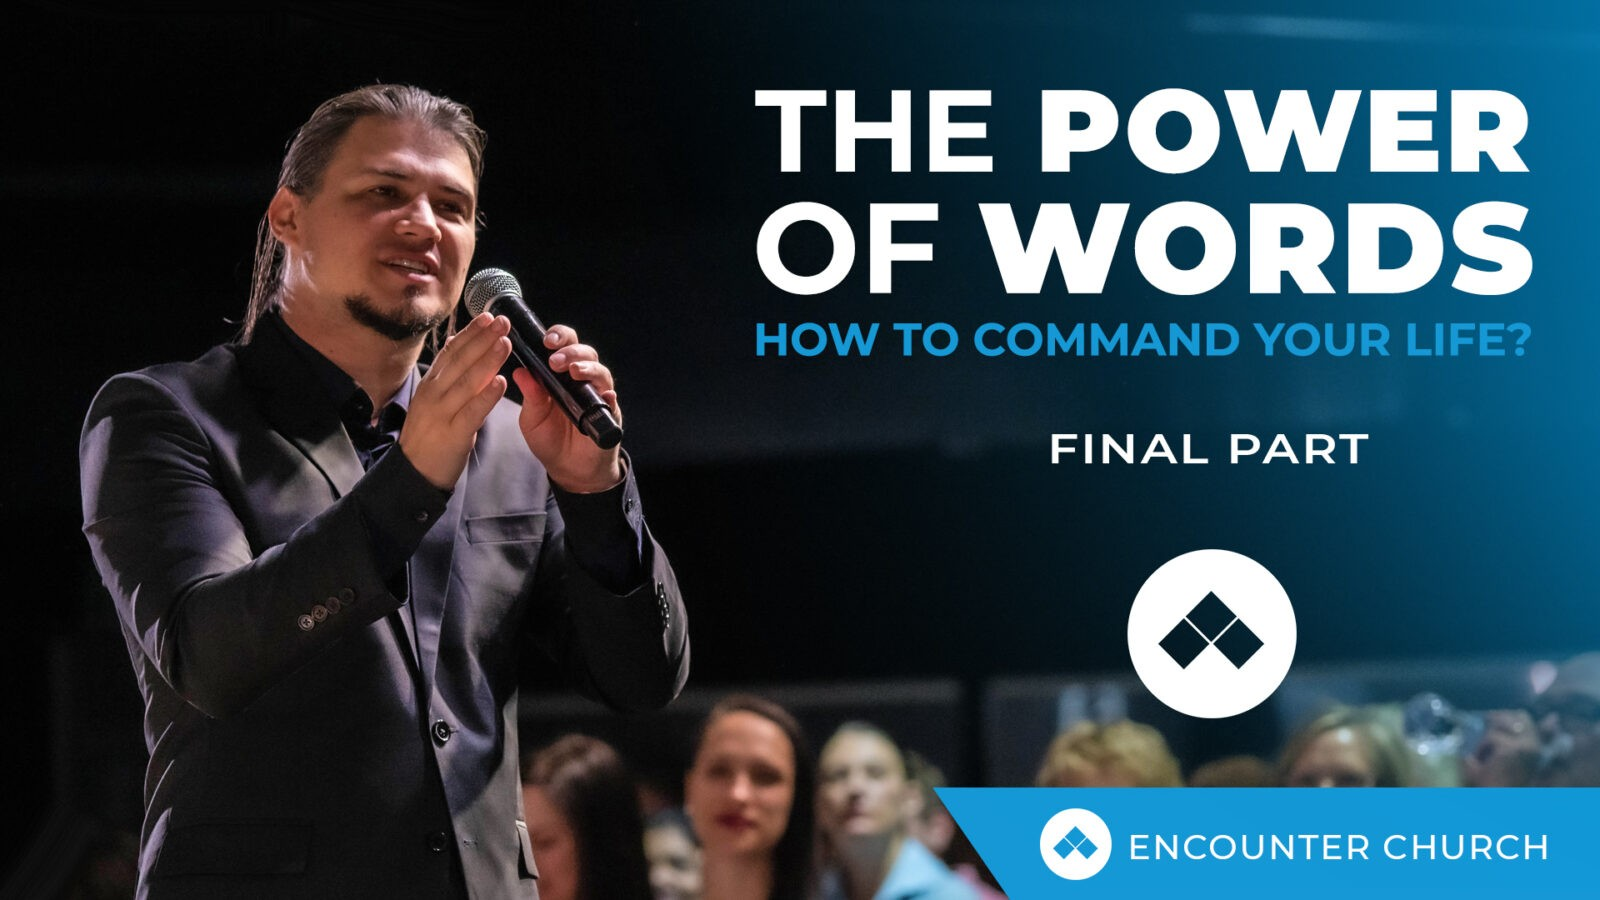 The Power of Words Final Part